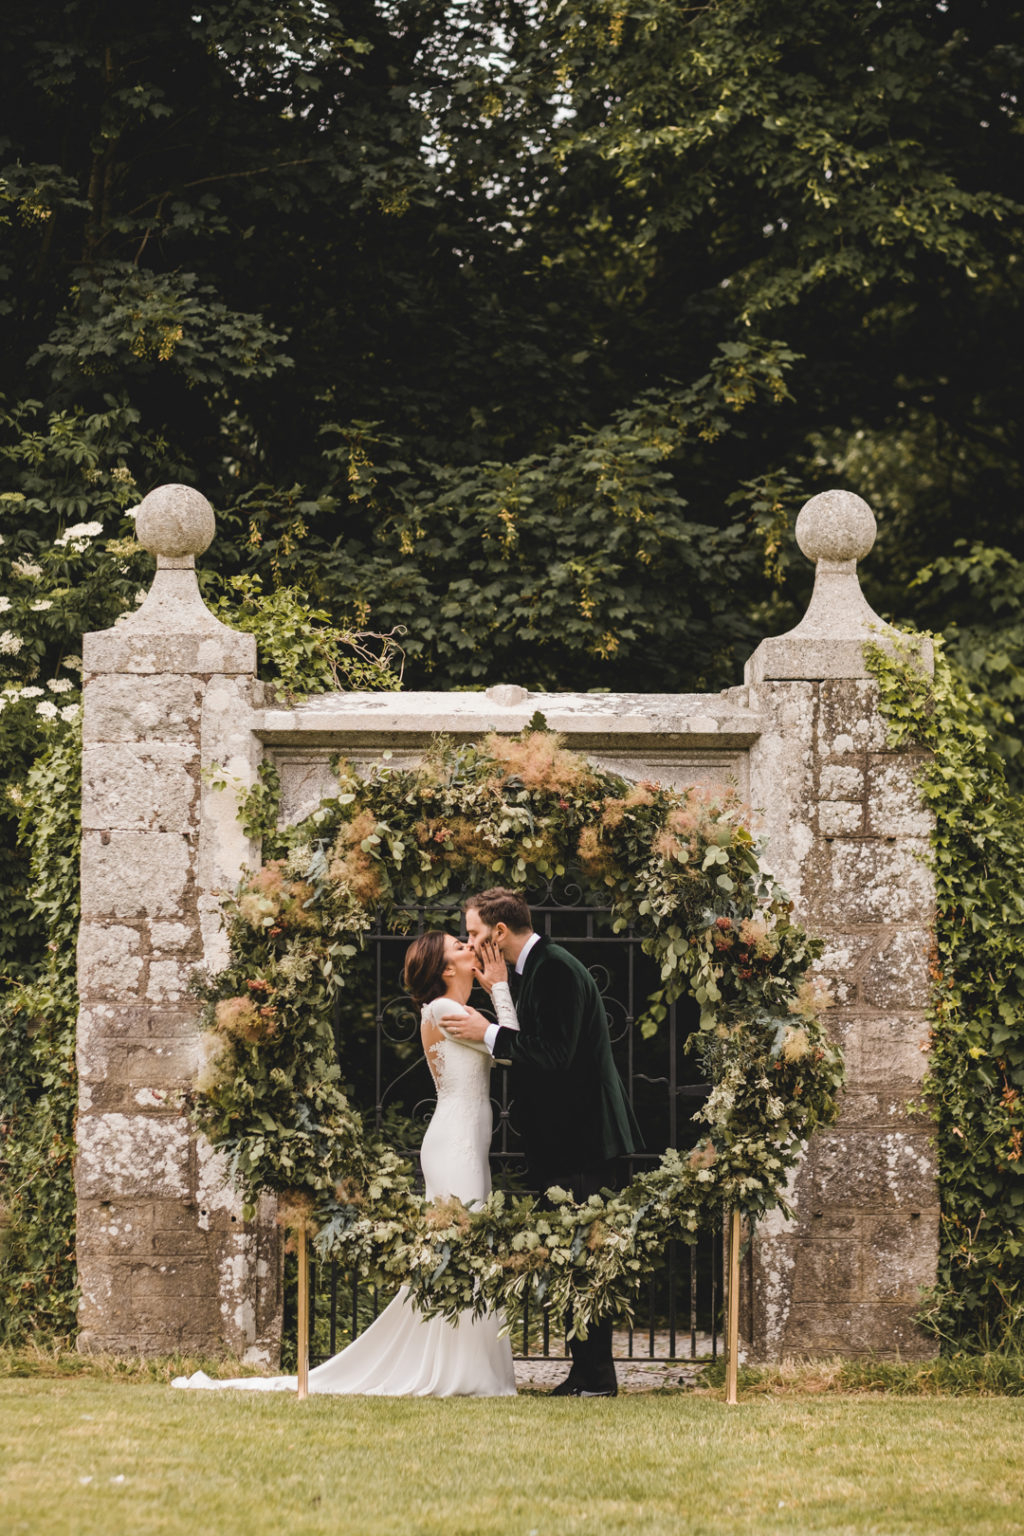 25 Epic Wedding Ceremony Styling Ideas One Fab Day Onefabday intended for Small Backyard Wedding Ceremony Ideas